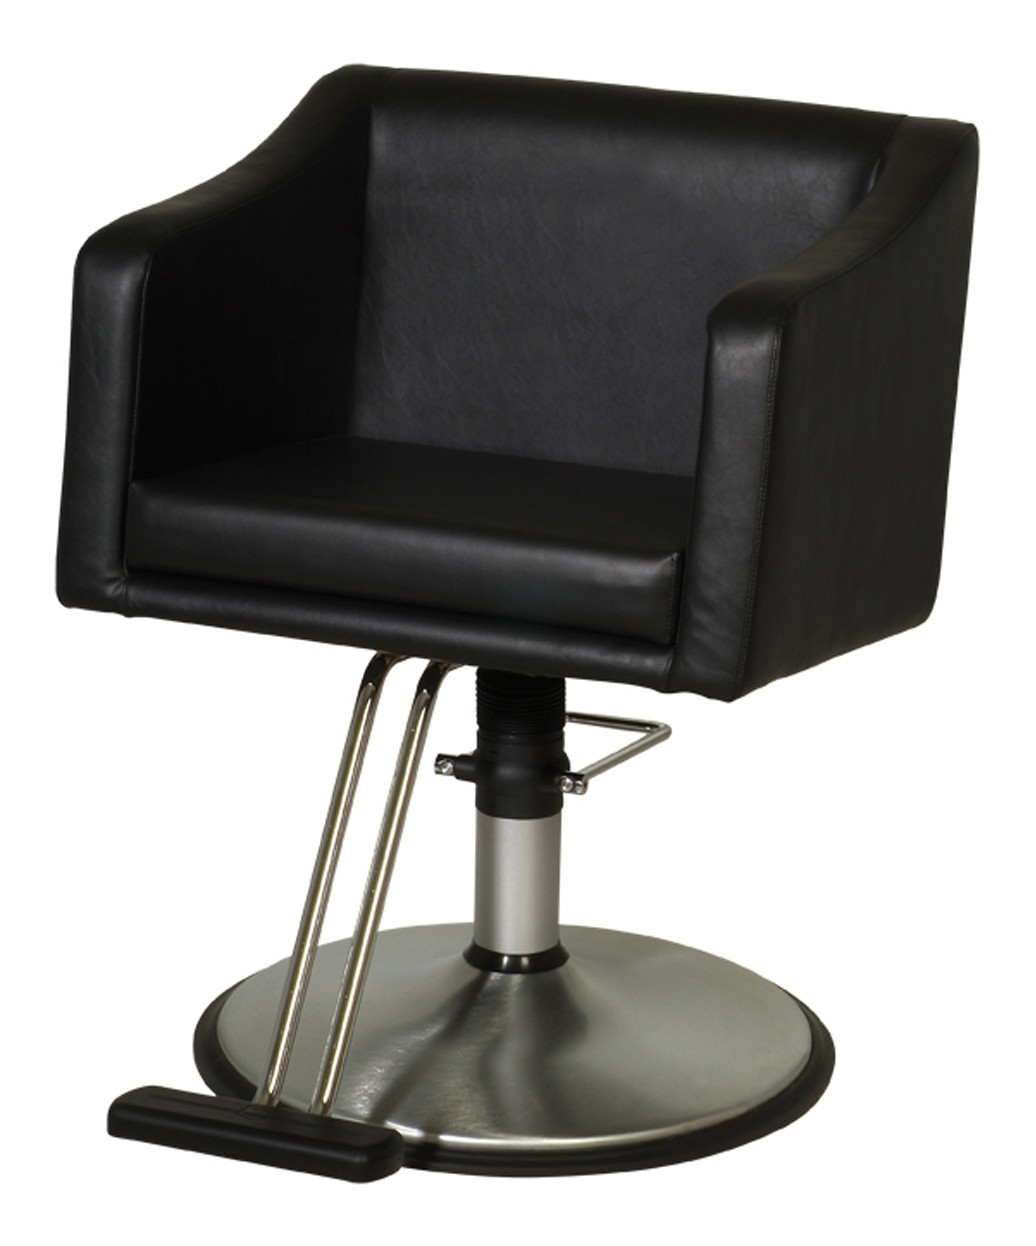 LK12 Look Styling Chair – Belvedere Styling Chairs